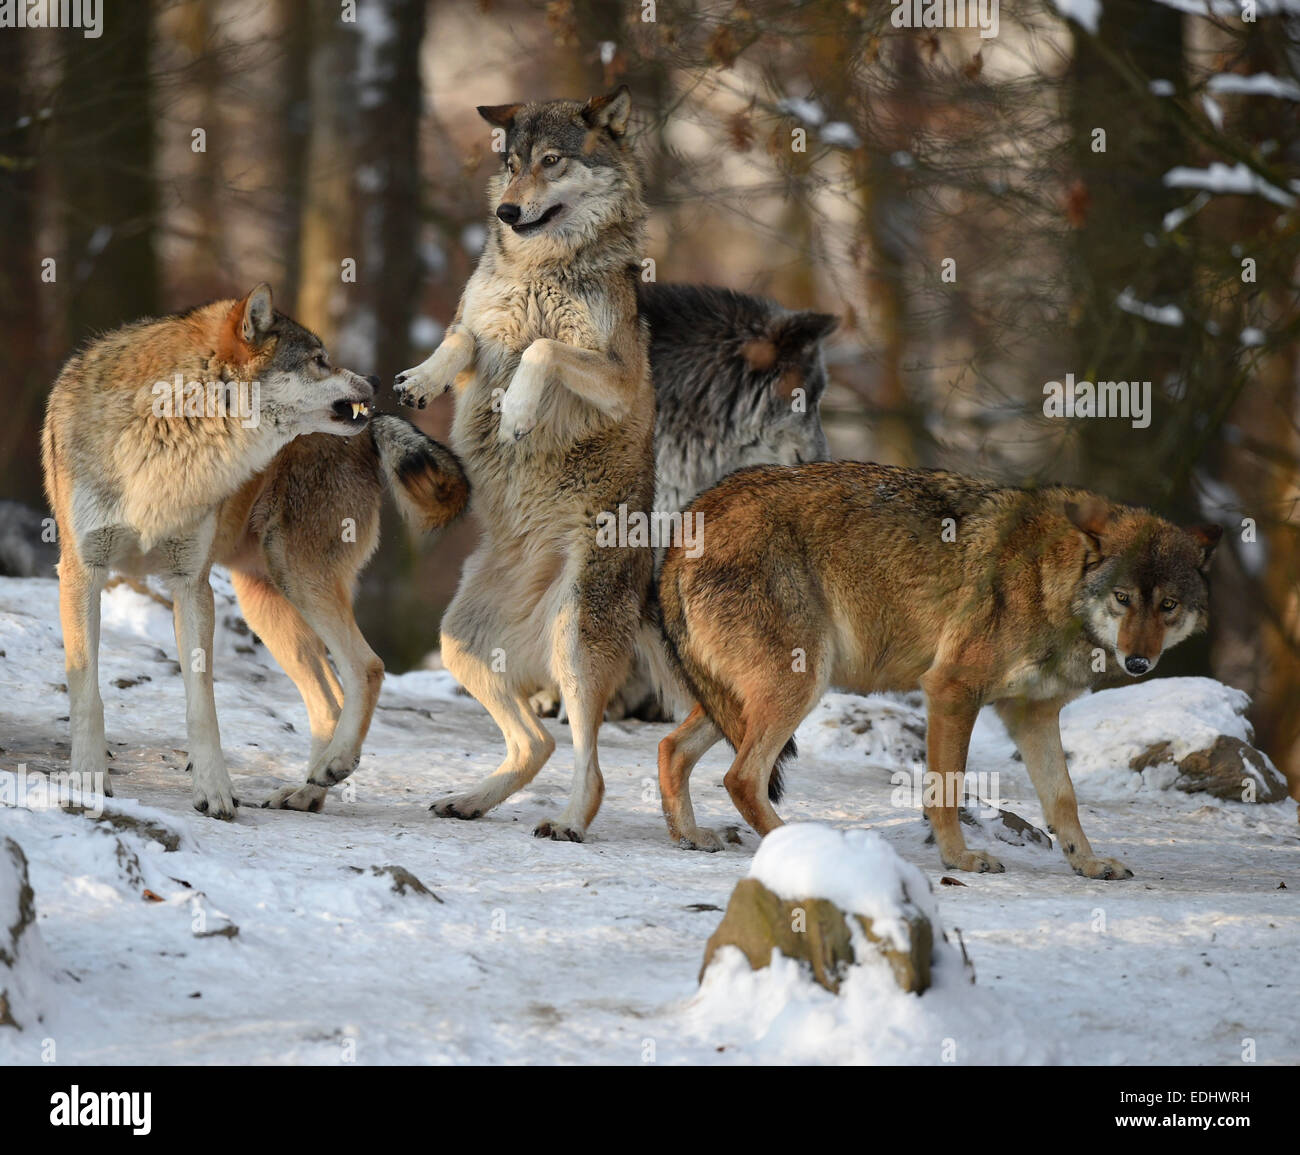 Reproof, ranking, domination, Northwestern wolf (Canis lupus occidentalis) in the snow, captive, Baden-Württemberg, - Stock Image